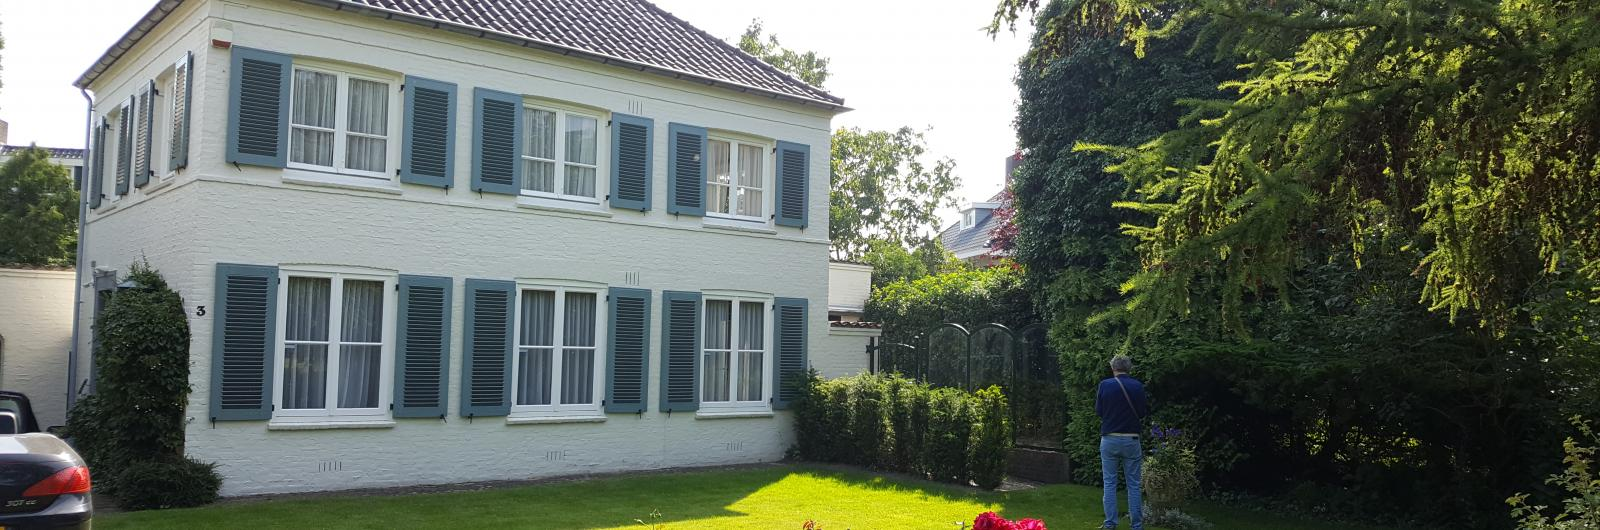 Renovatie Den Bosch